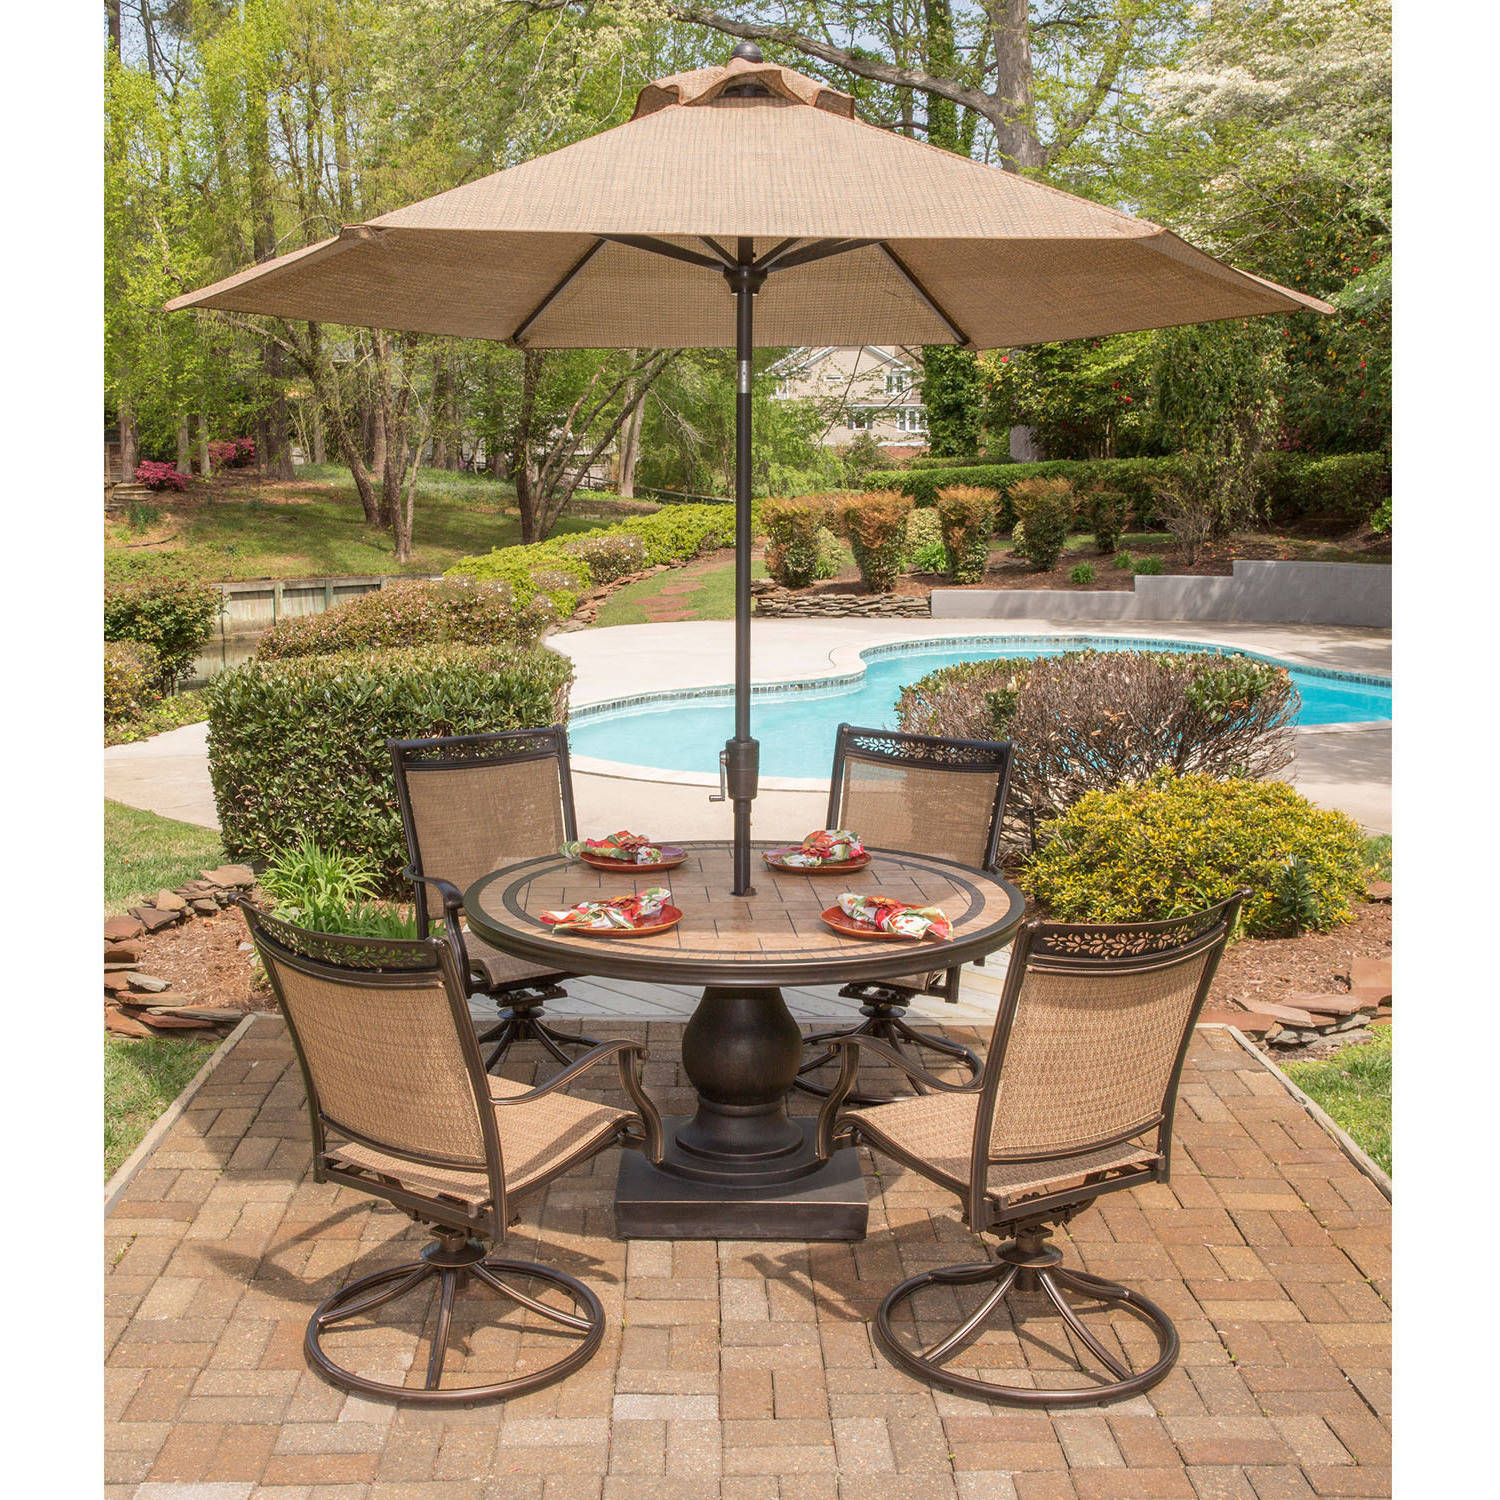 Hanover Fontana 5-Piece Outdoor Dining Room Set with Swivel Rockers, Tile-Top Table and... by Hanover